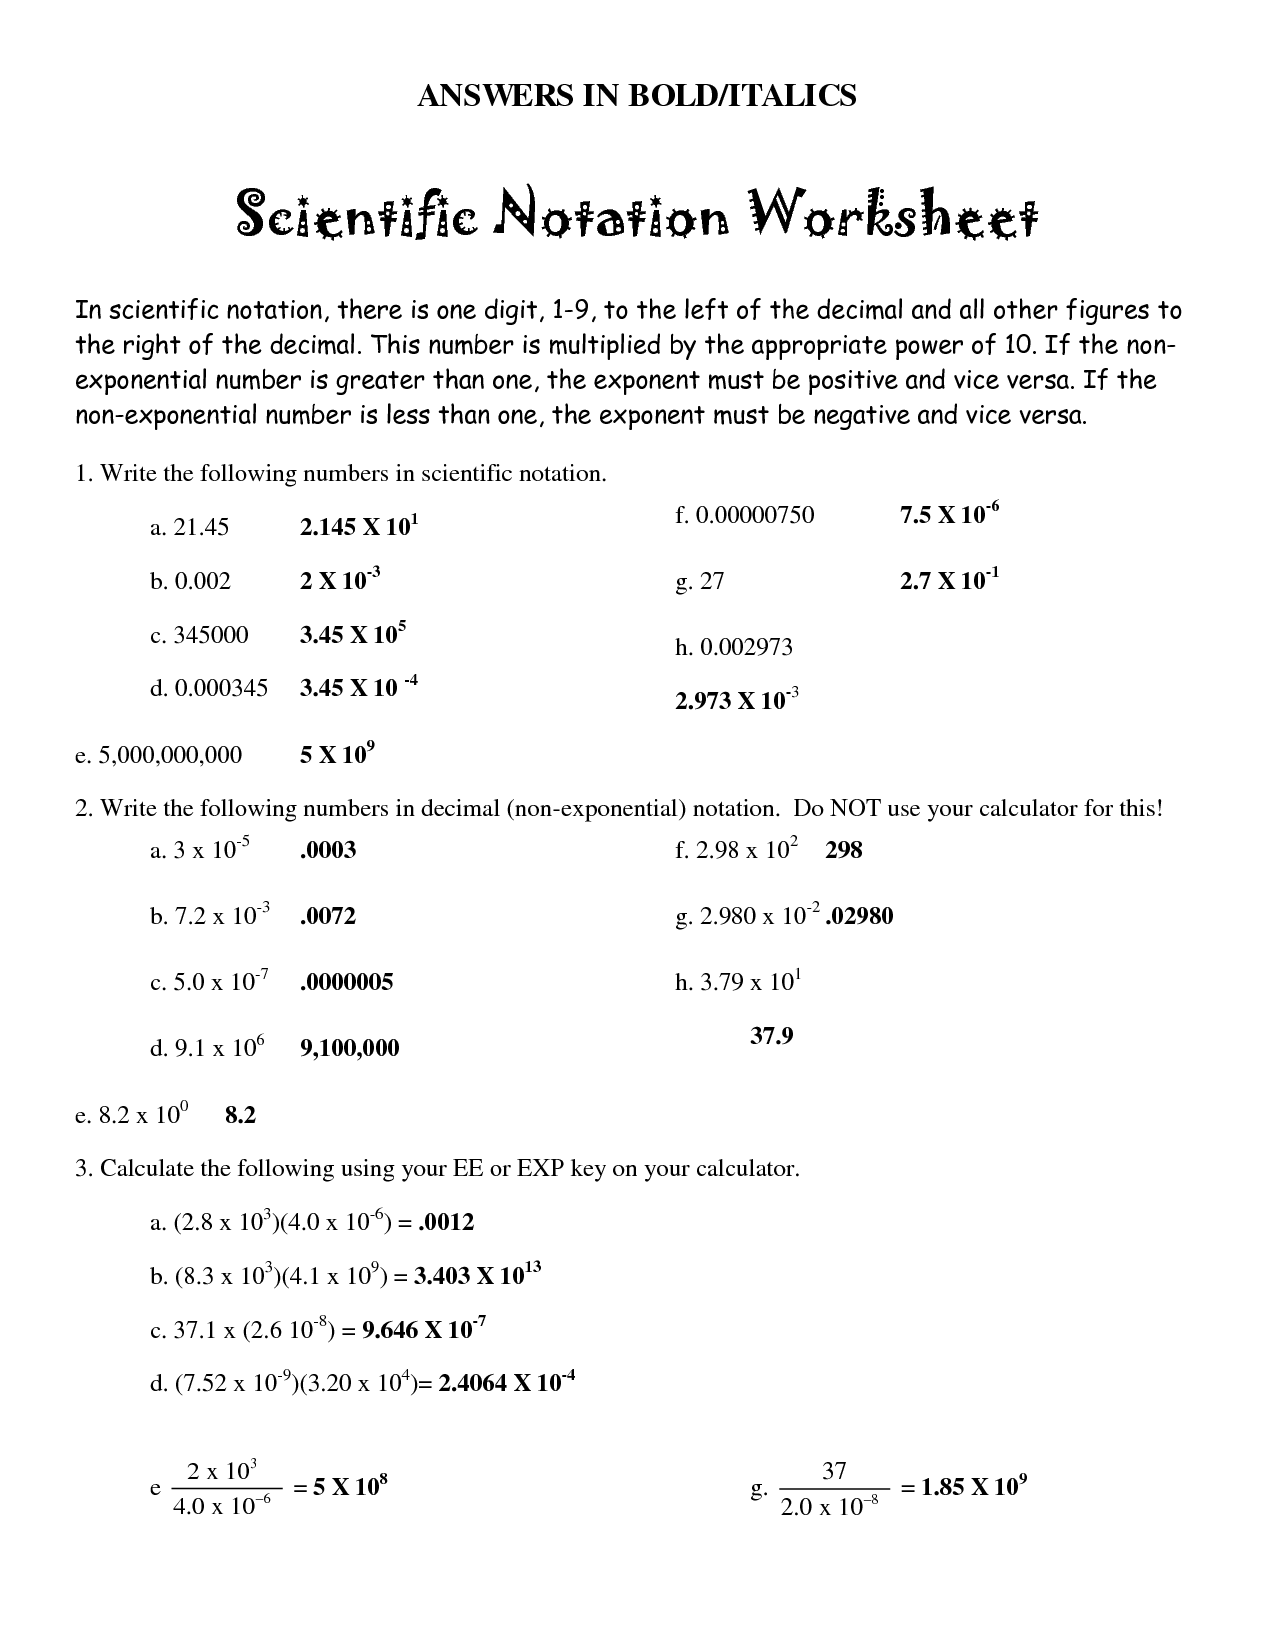 Writing In Scientific Notation Worksheet Answers